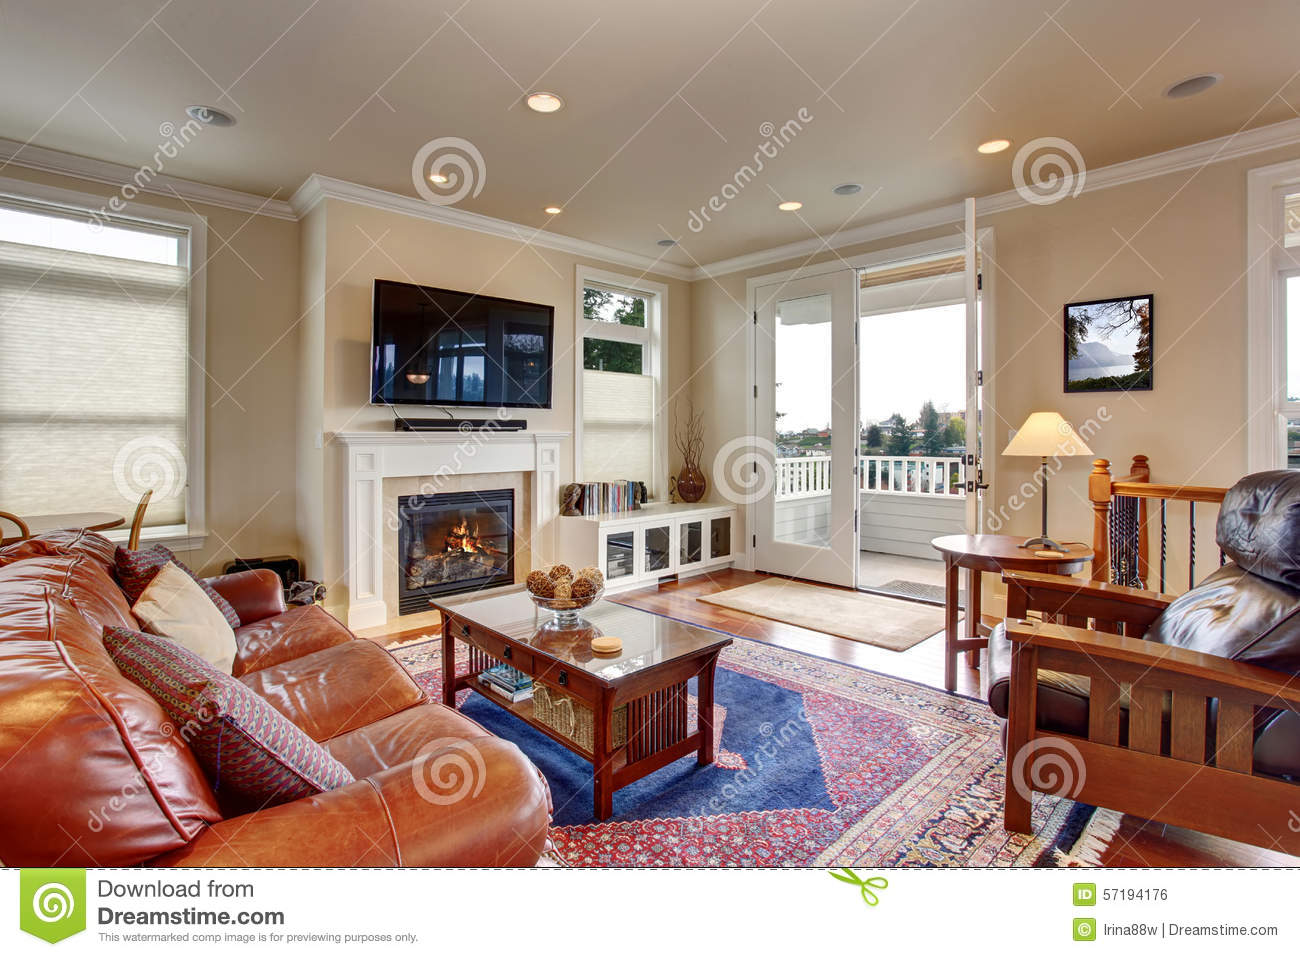 red rugs for living room decor ideas india luxury with and blue rug stock photo image of